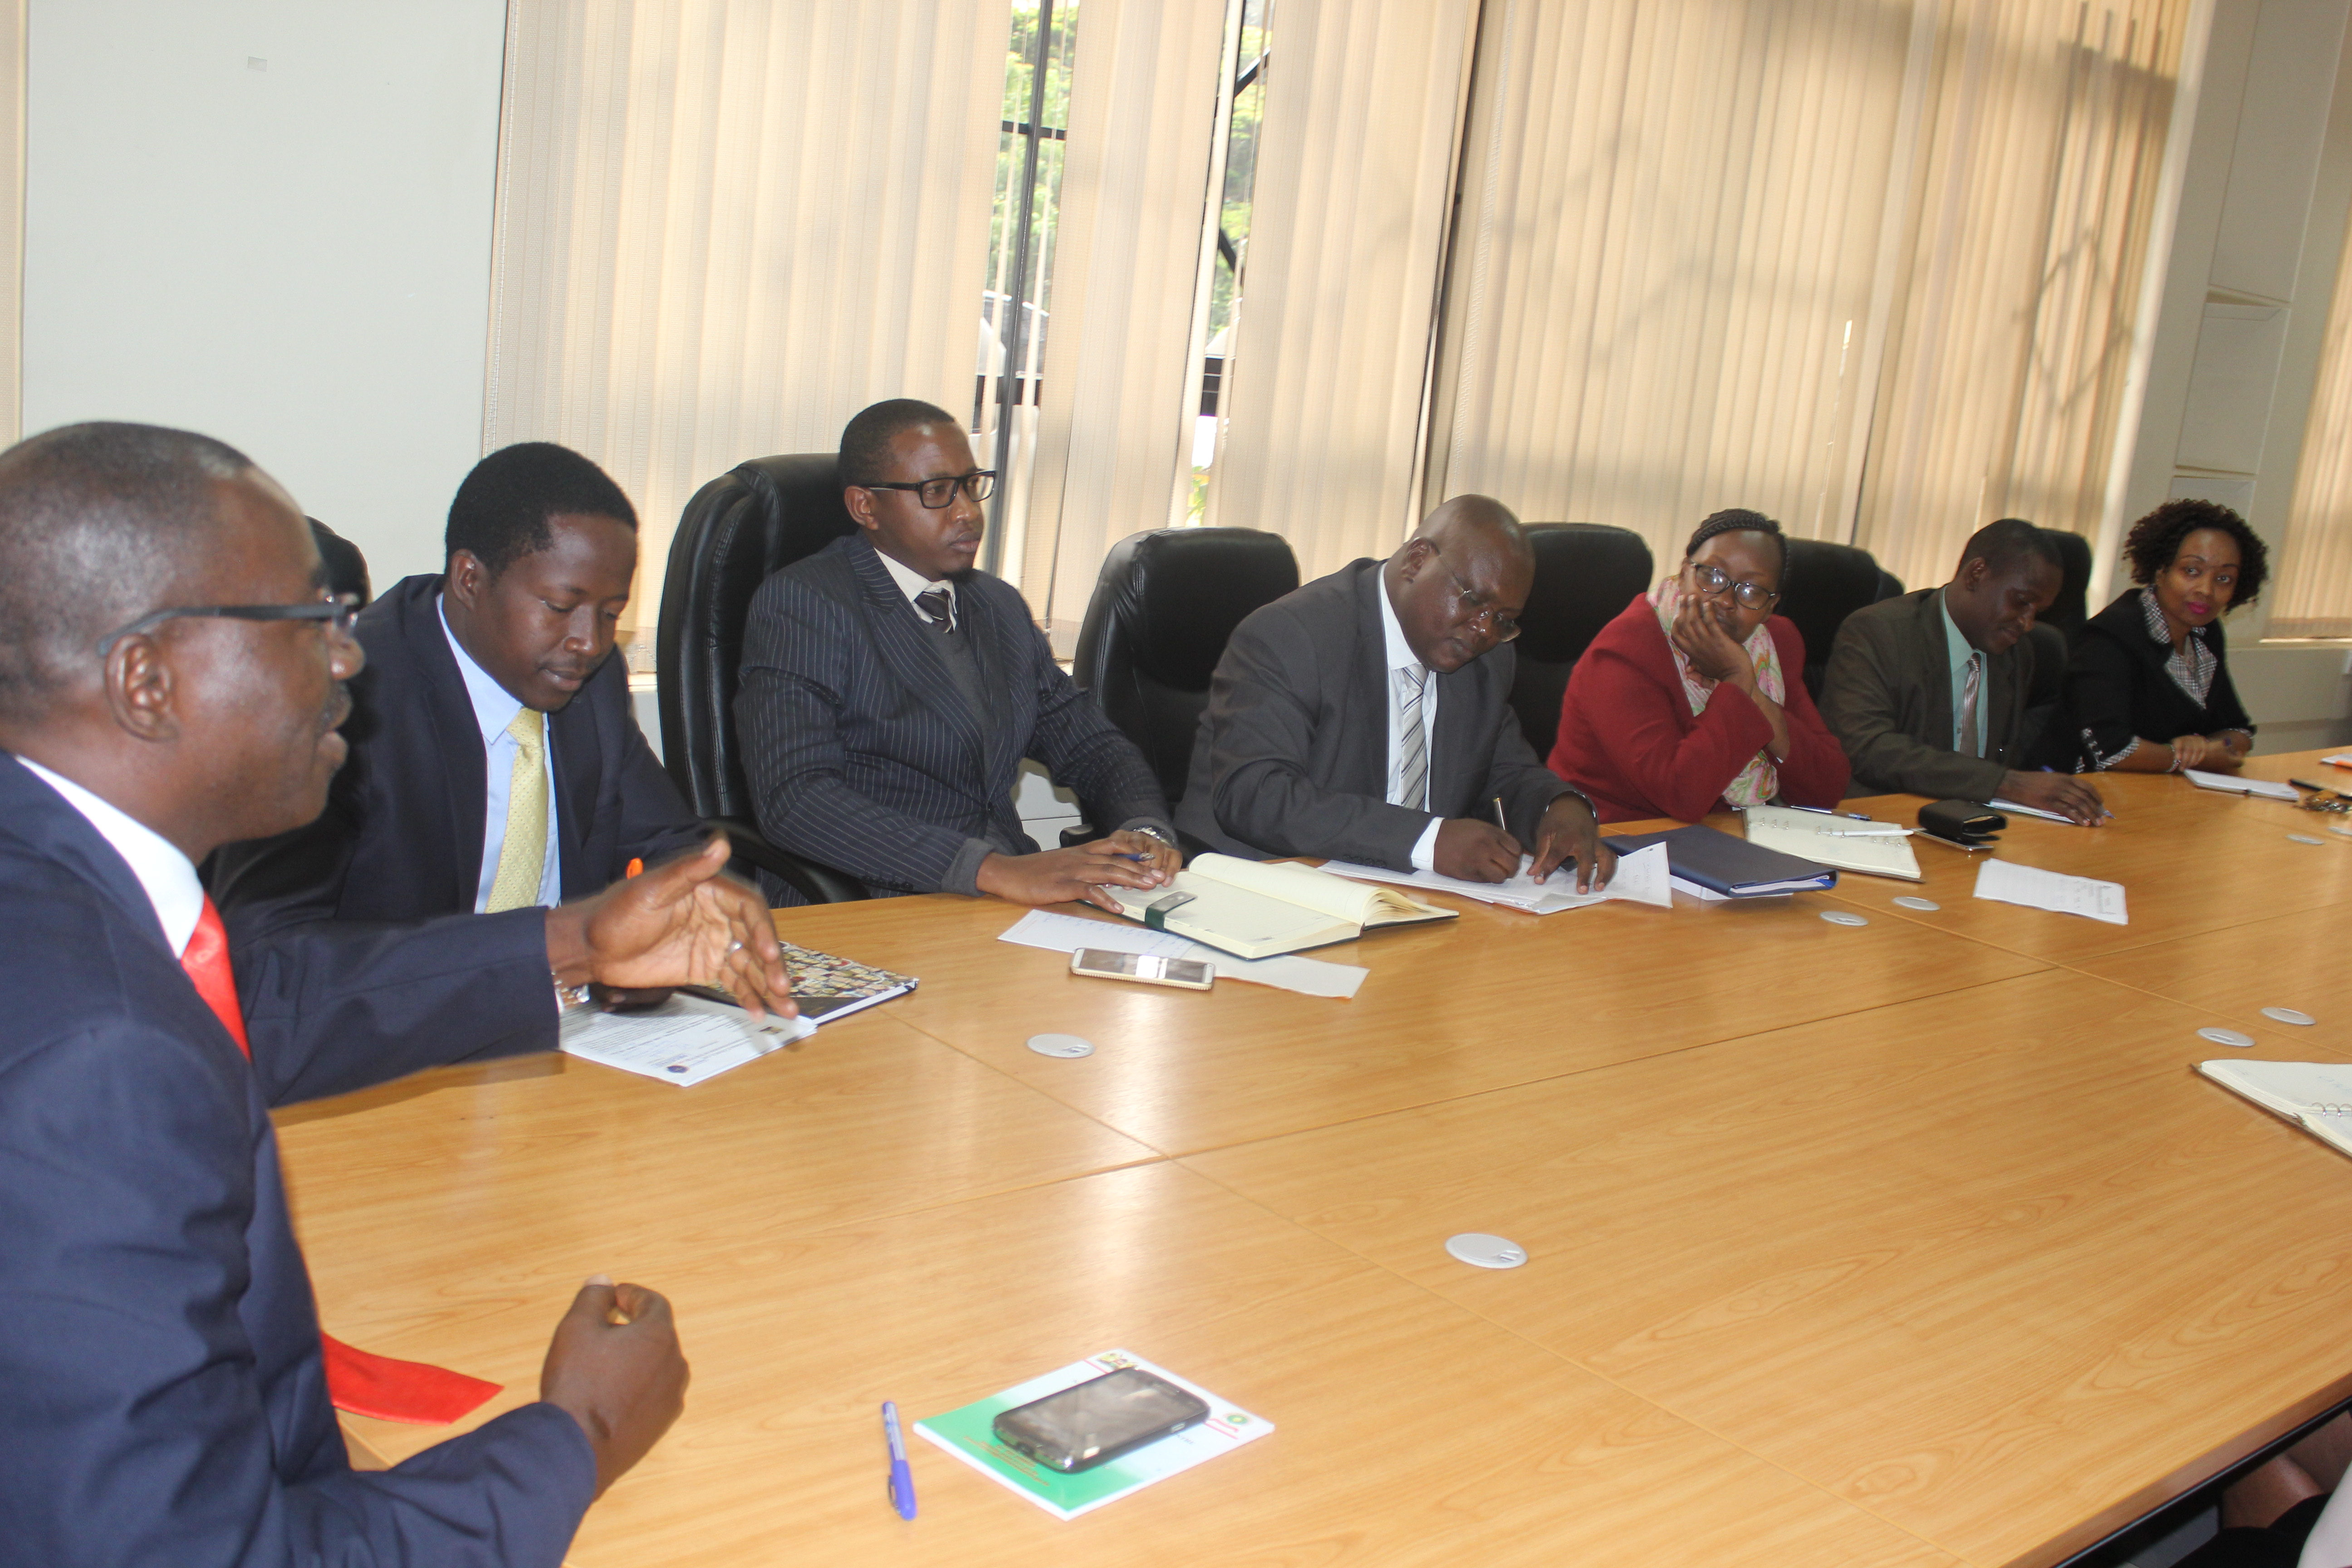 NCCJR members in a meeting with members of NCRC